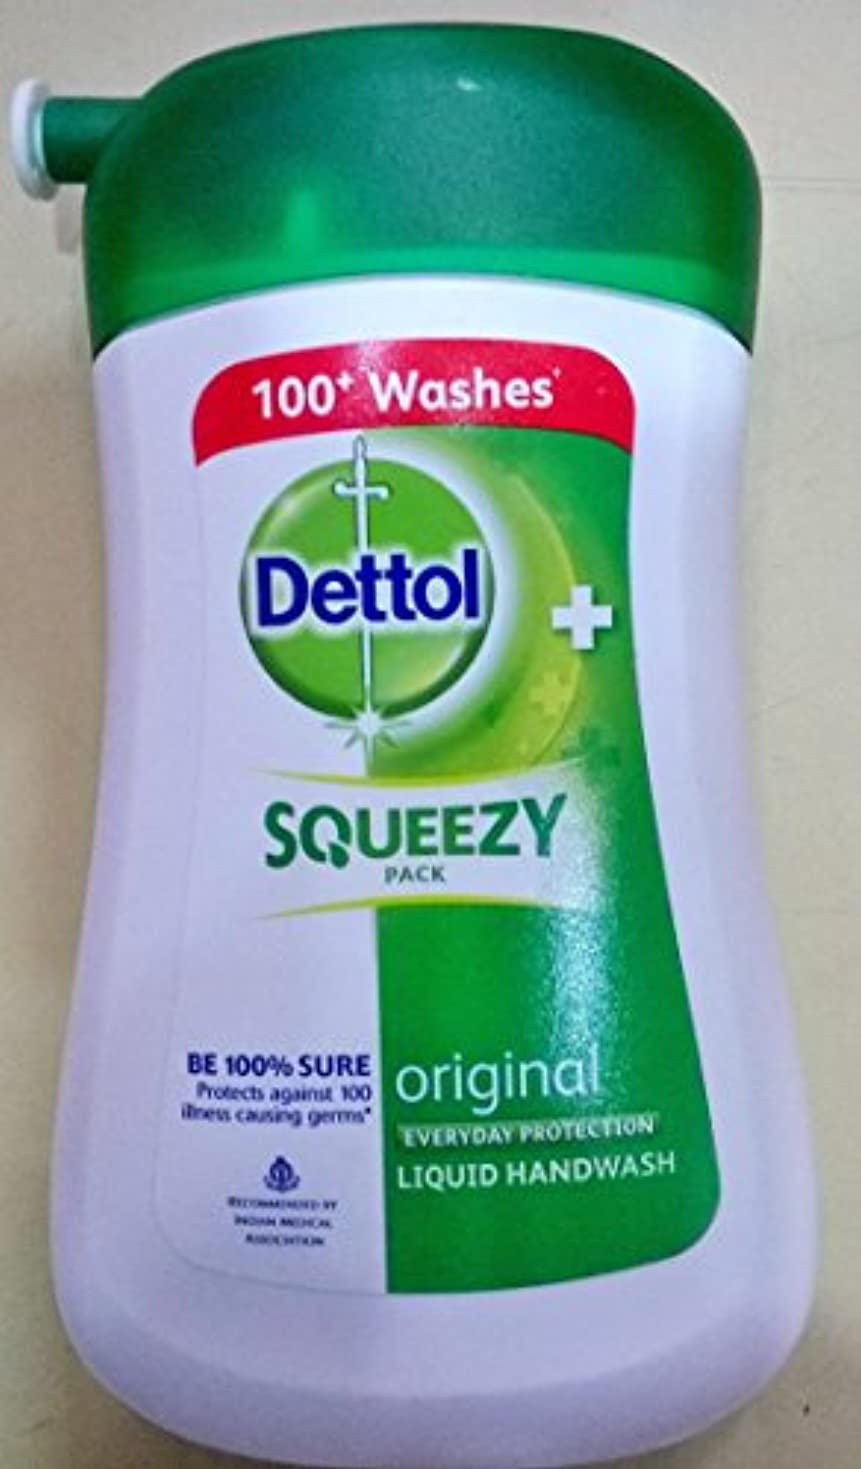 キー致死上向きDETTOL SQUEEZY PACK LIQUID HANDWASH 100ML